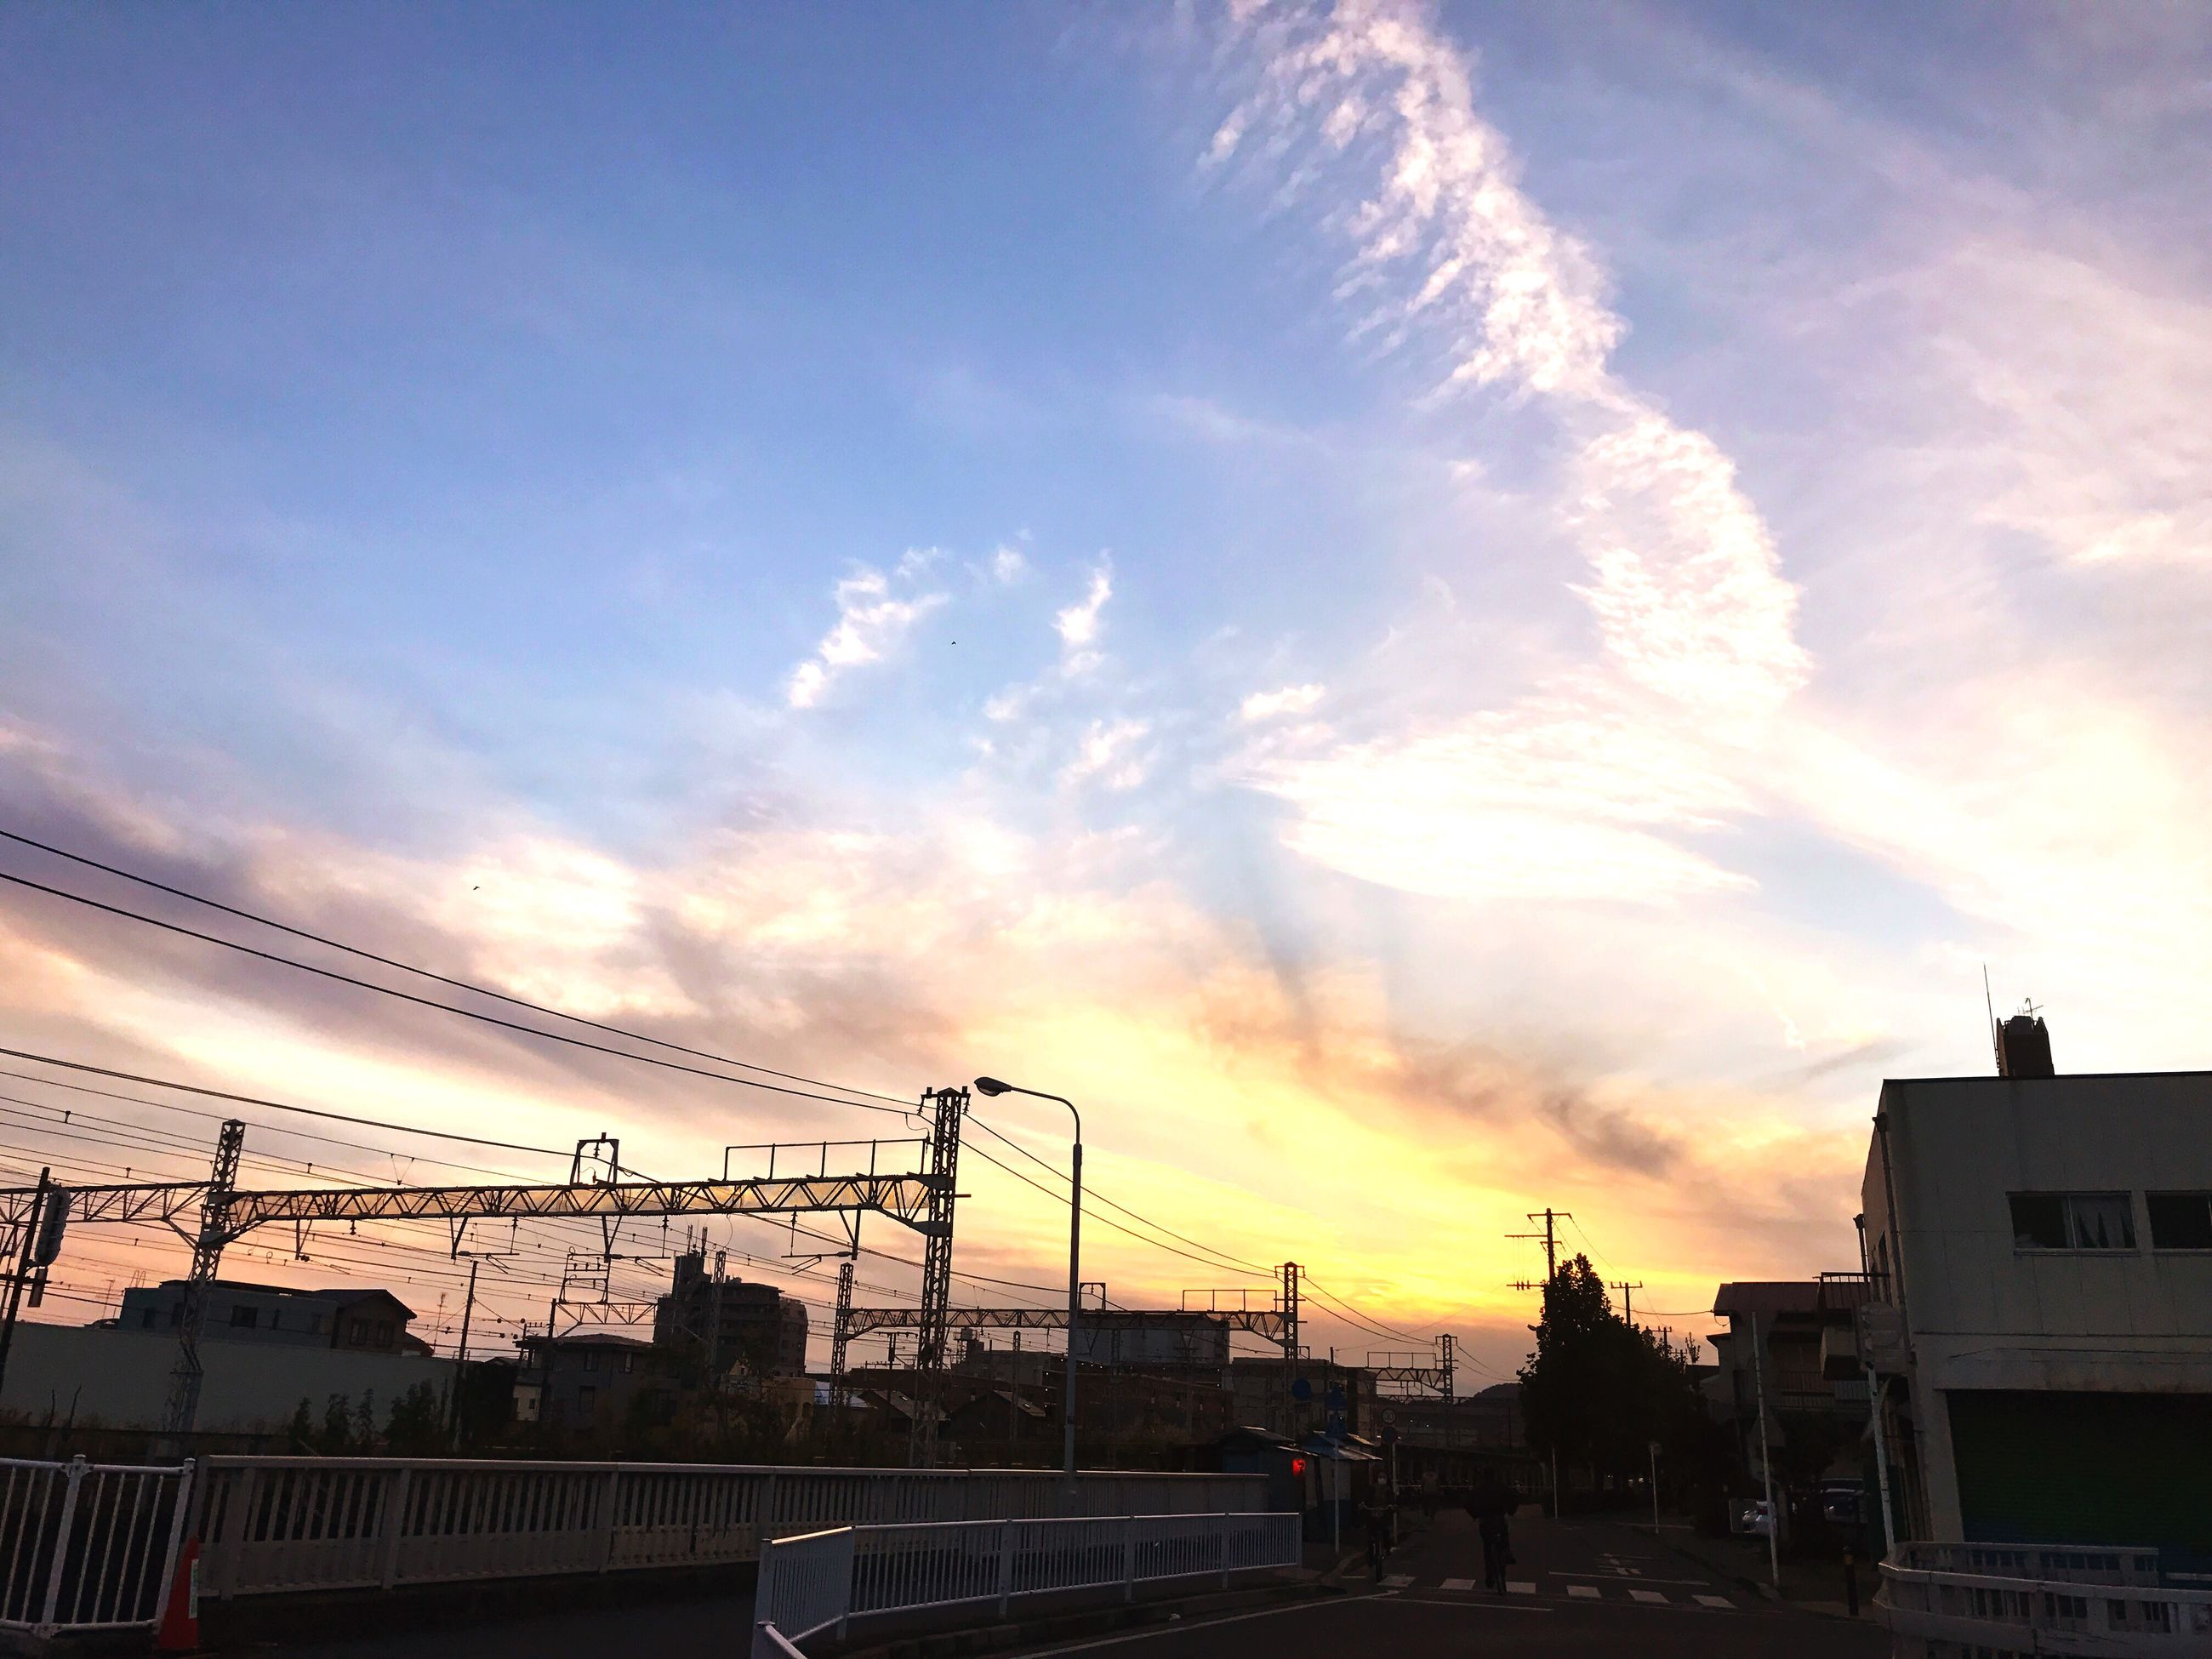 sky, cloud - sky, built structure, sunset, building exterior, architecture, transportation, outdoors, city, car, no people, road, day